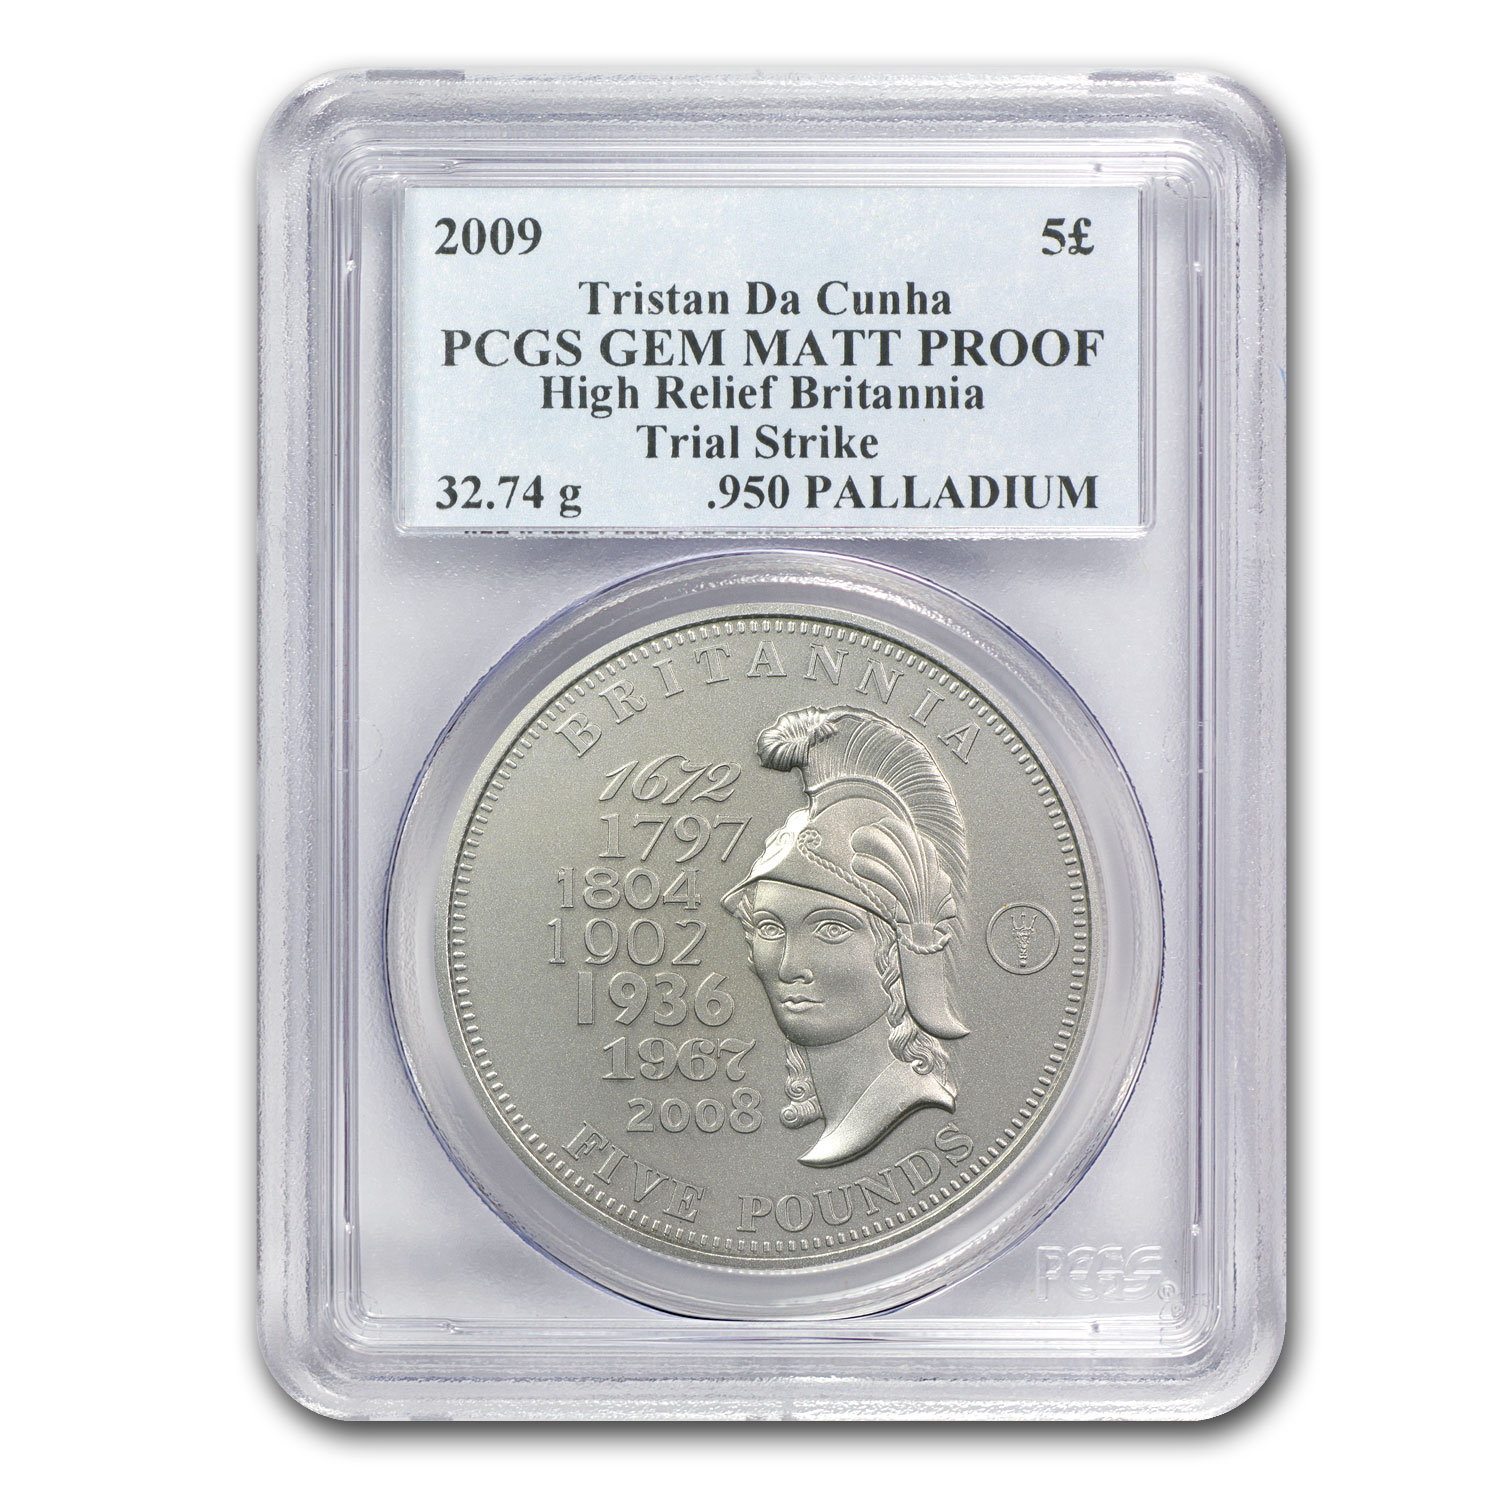 2009 Tristan Da Cunha £5 PCGS GEM MATT PROOF High Relief